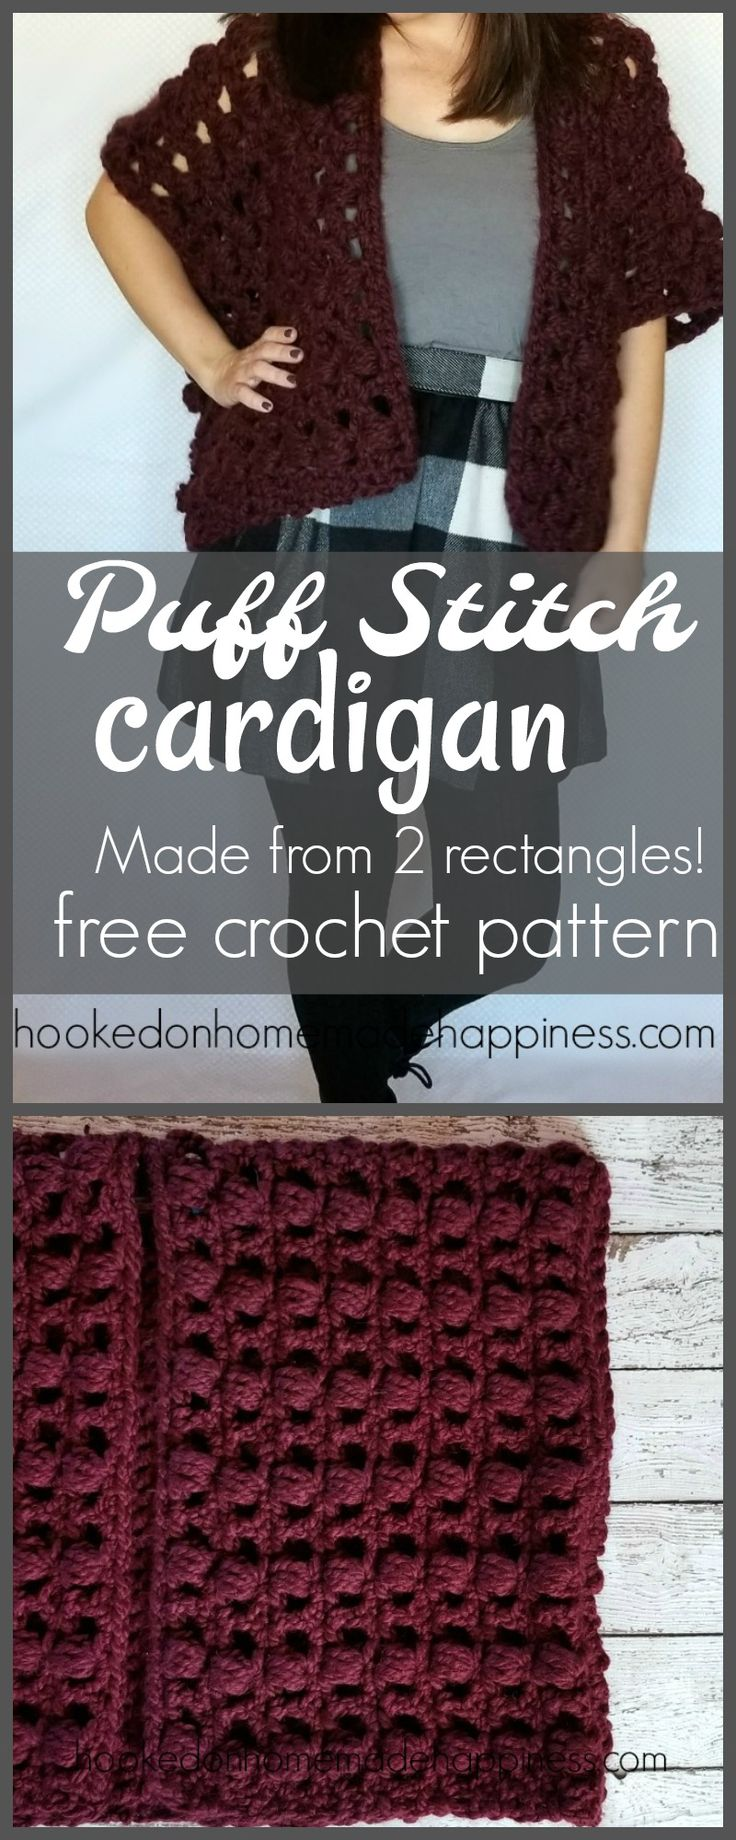 This fun cardigan is quick and easy to make. Made from just 2 rectangles! The rectangles are made from a simple 2 row repeat that works up quick. With the puff stitches, this project is a yarn eater and I used just over 444 yards of super bulky yarn. I used super bulky yarn for …